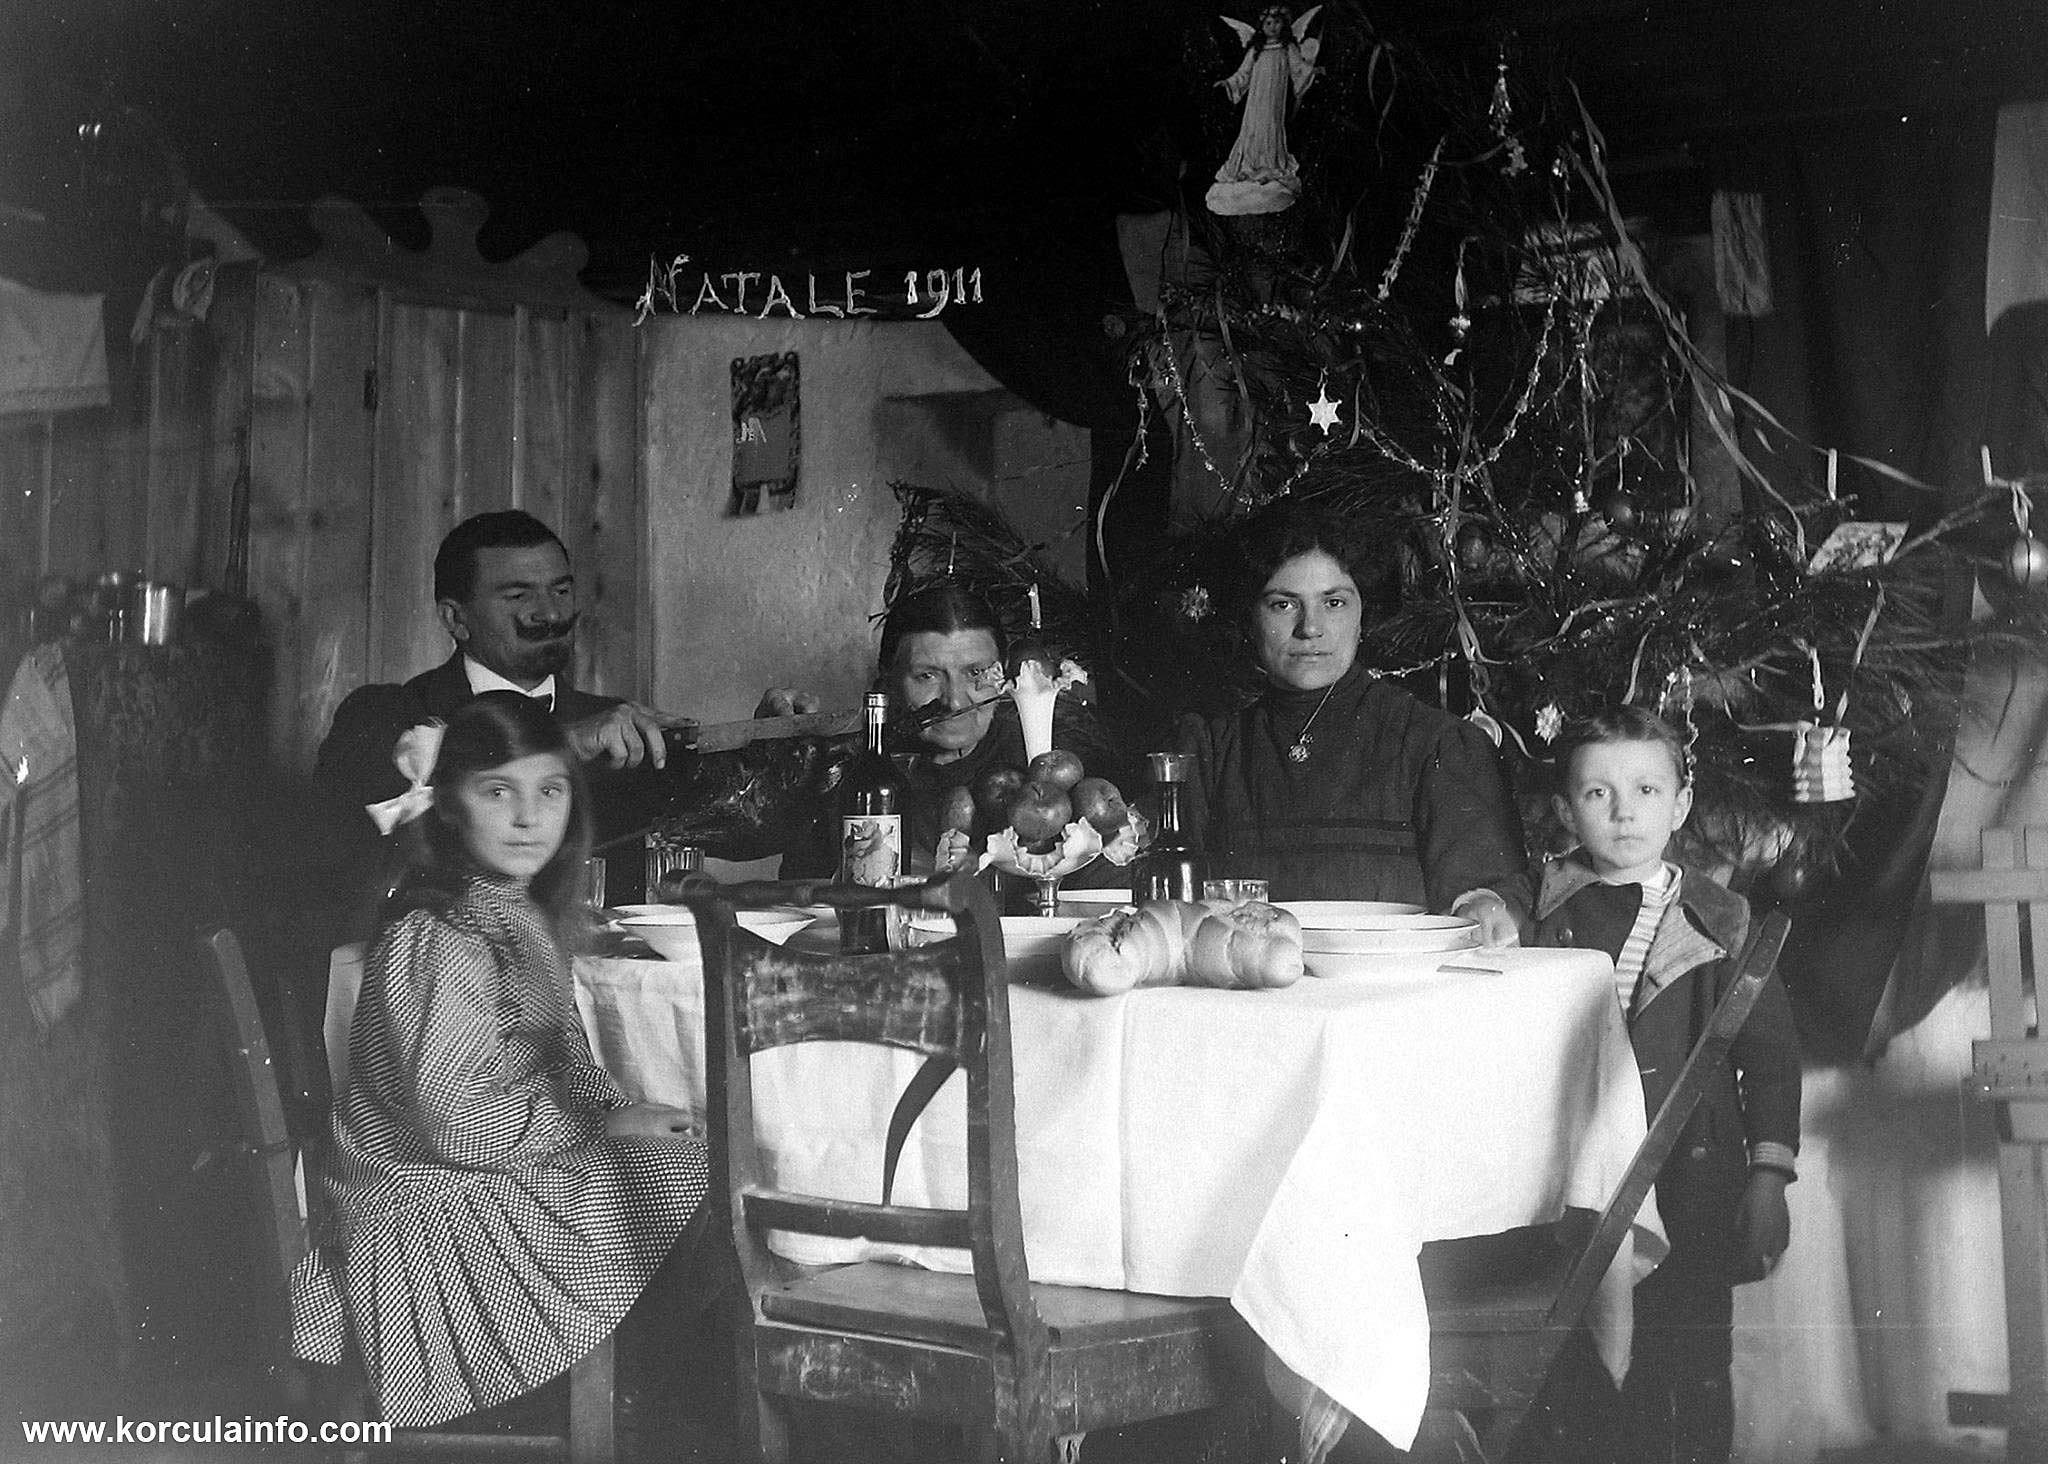 Christmas Lunch in Korcula in 1911